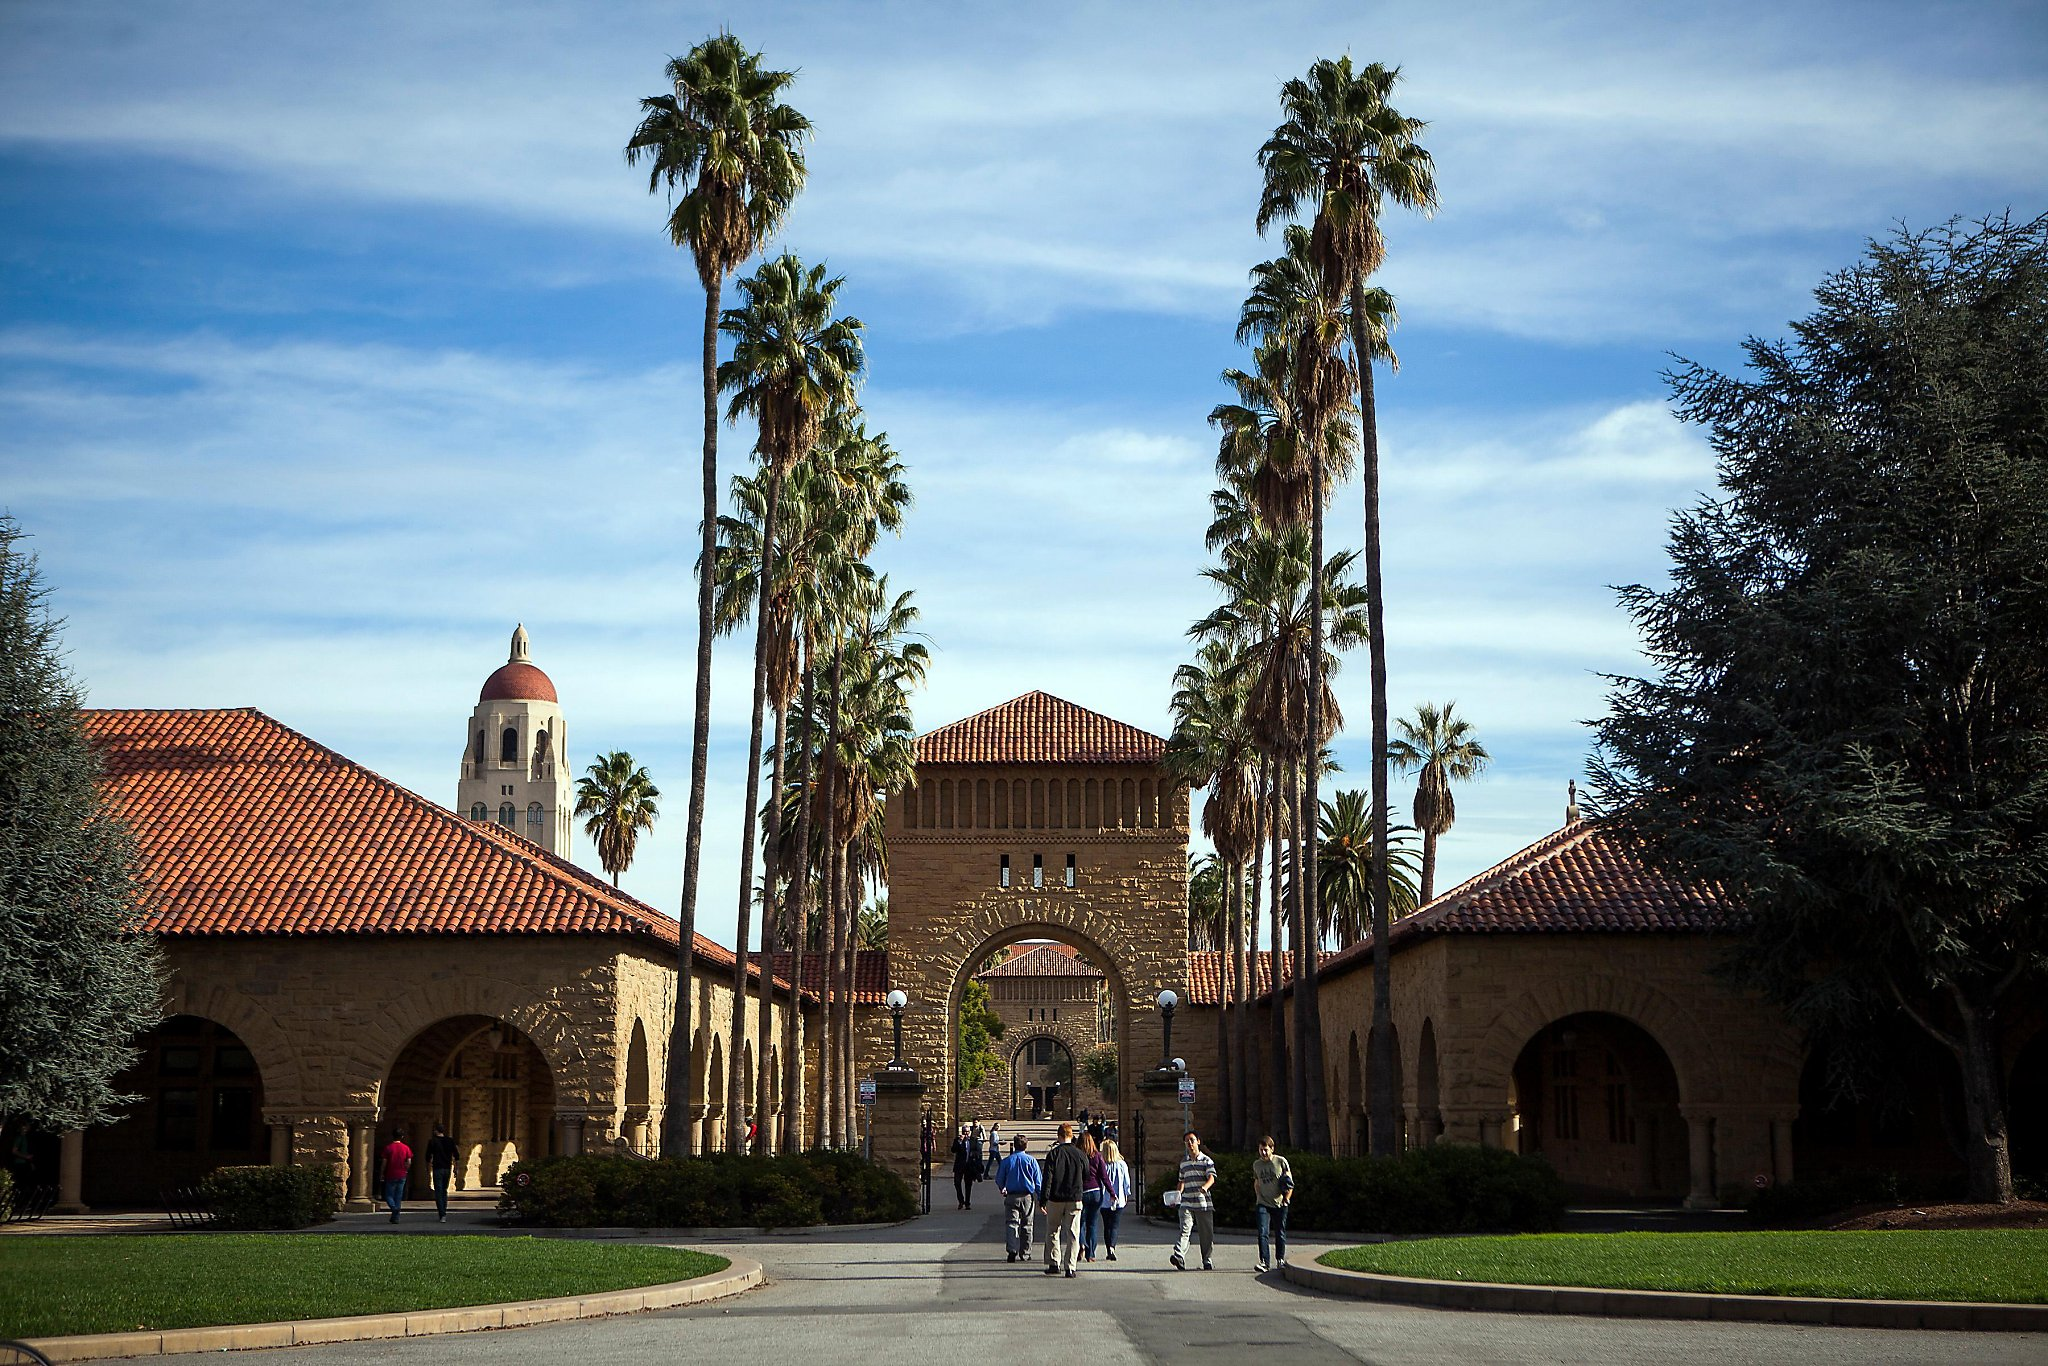 San Francisco Law School >> Stanford University data glitch exposes truth about scholarships - SFChronicle.com